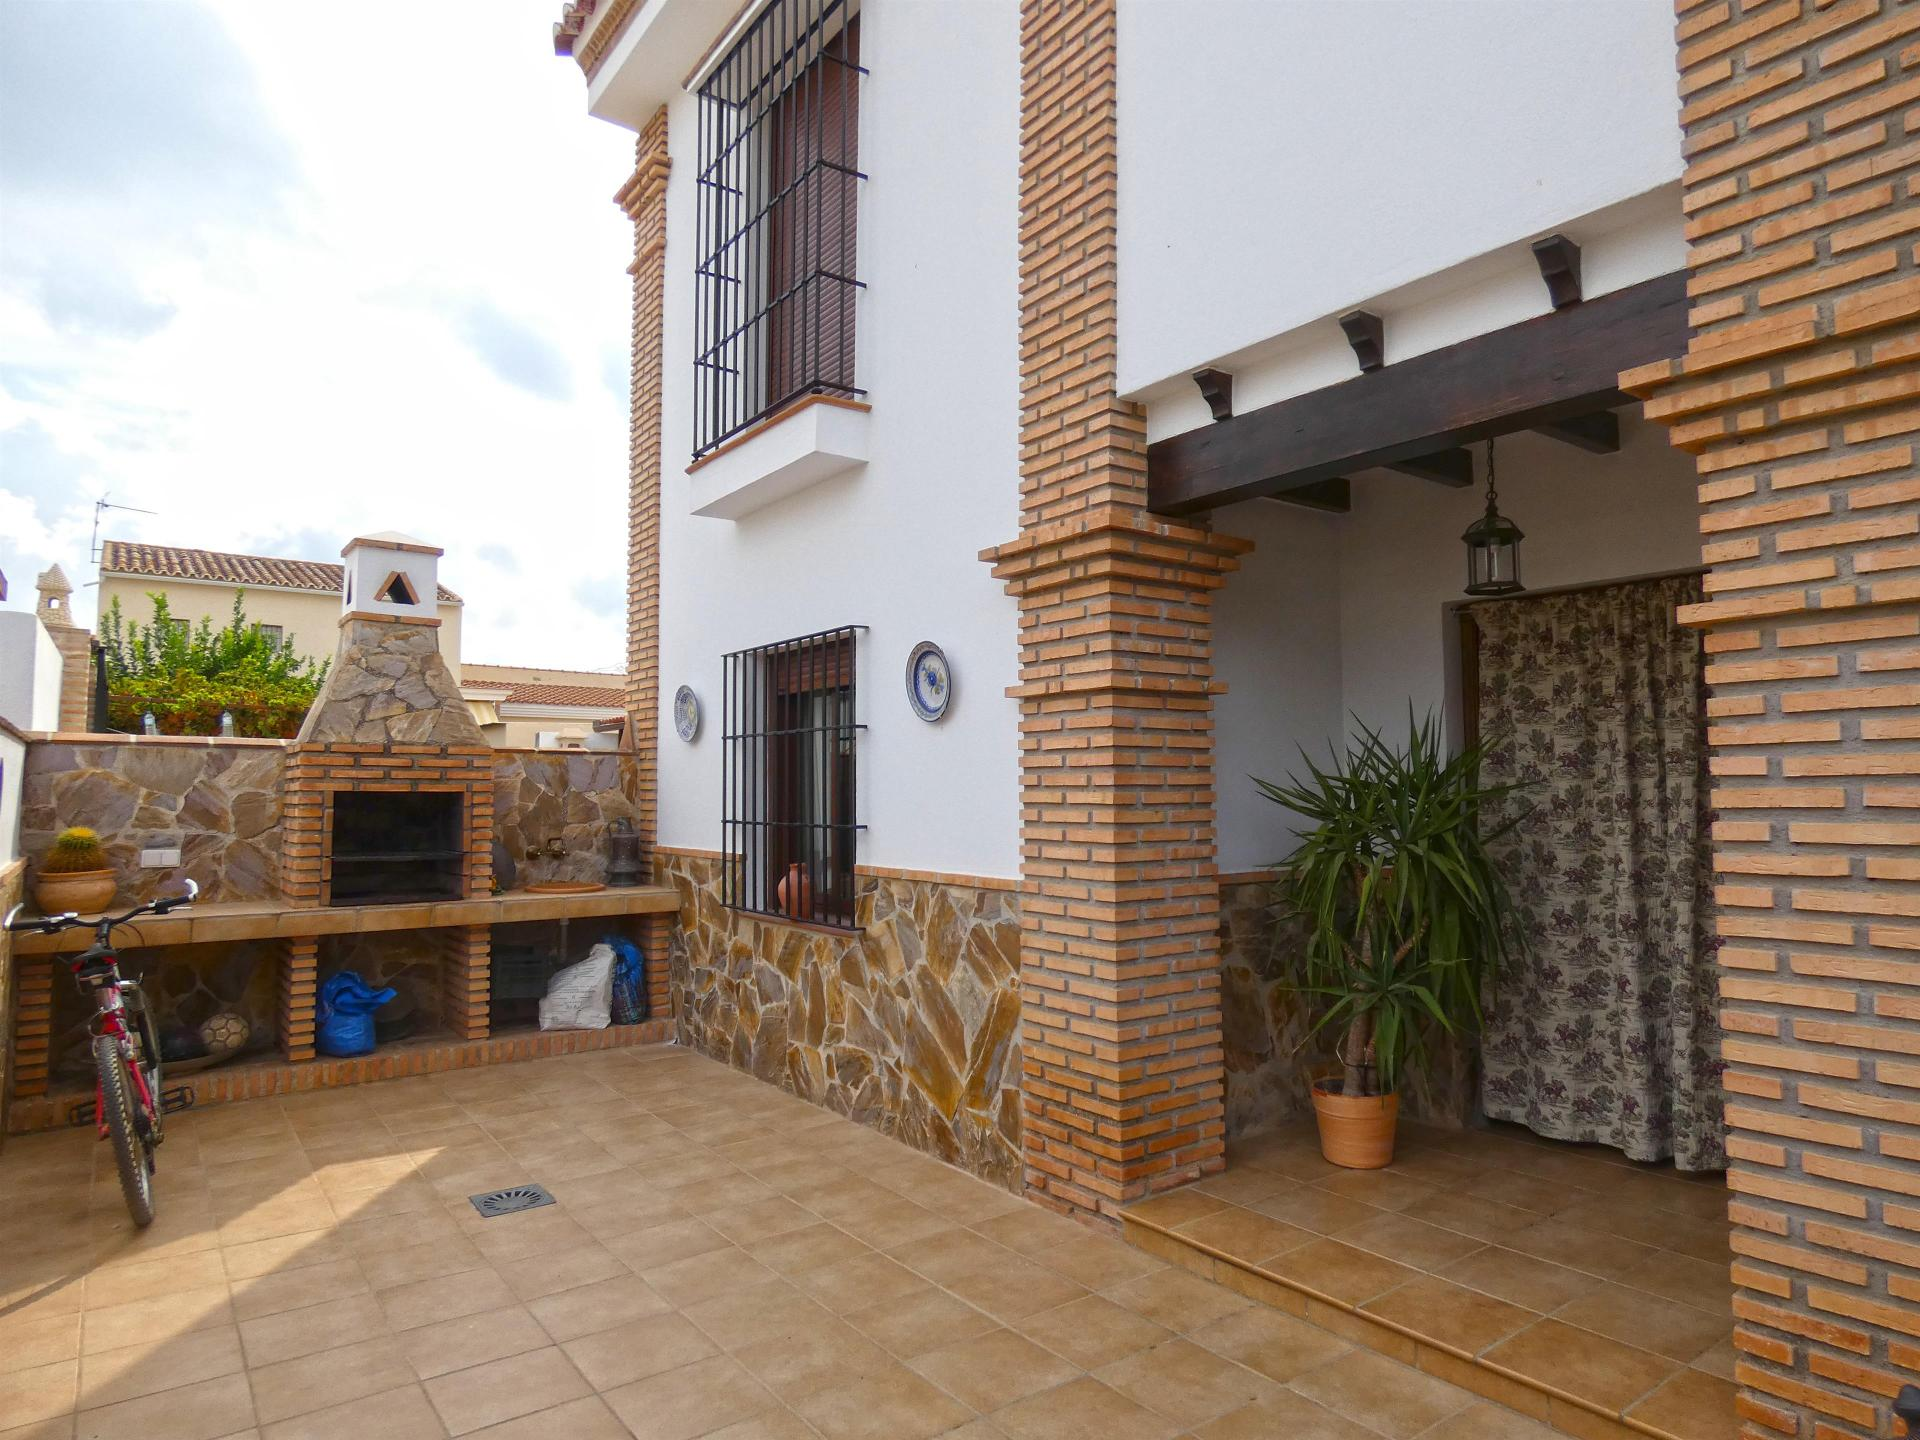 TH3499864: Town house for sale in Zalea